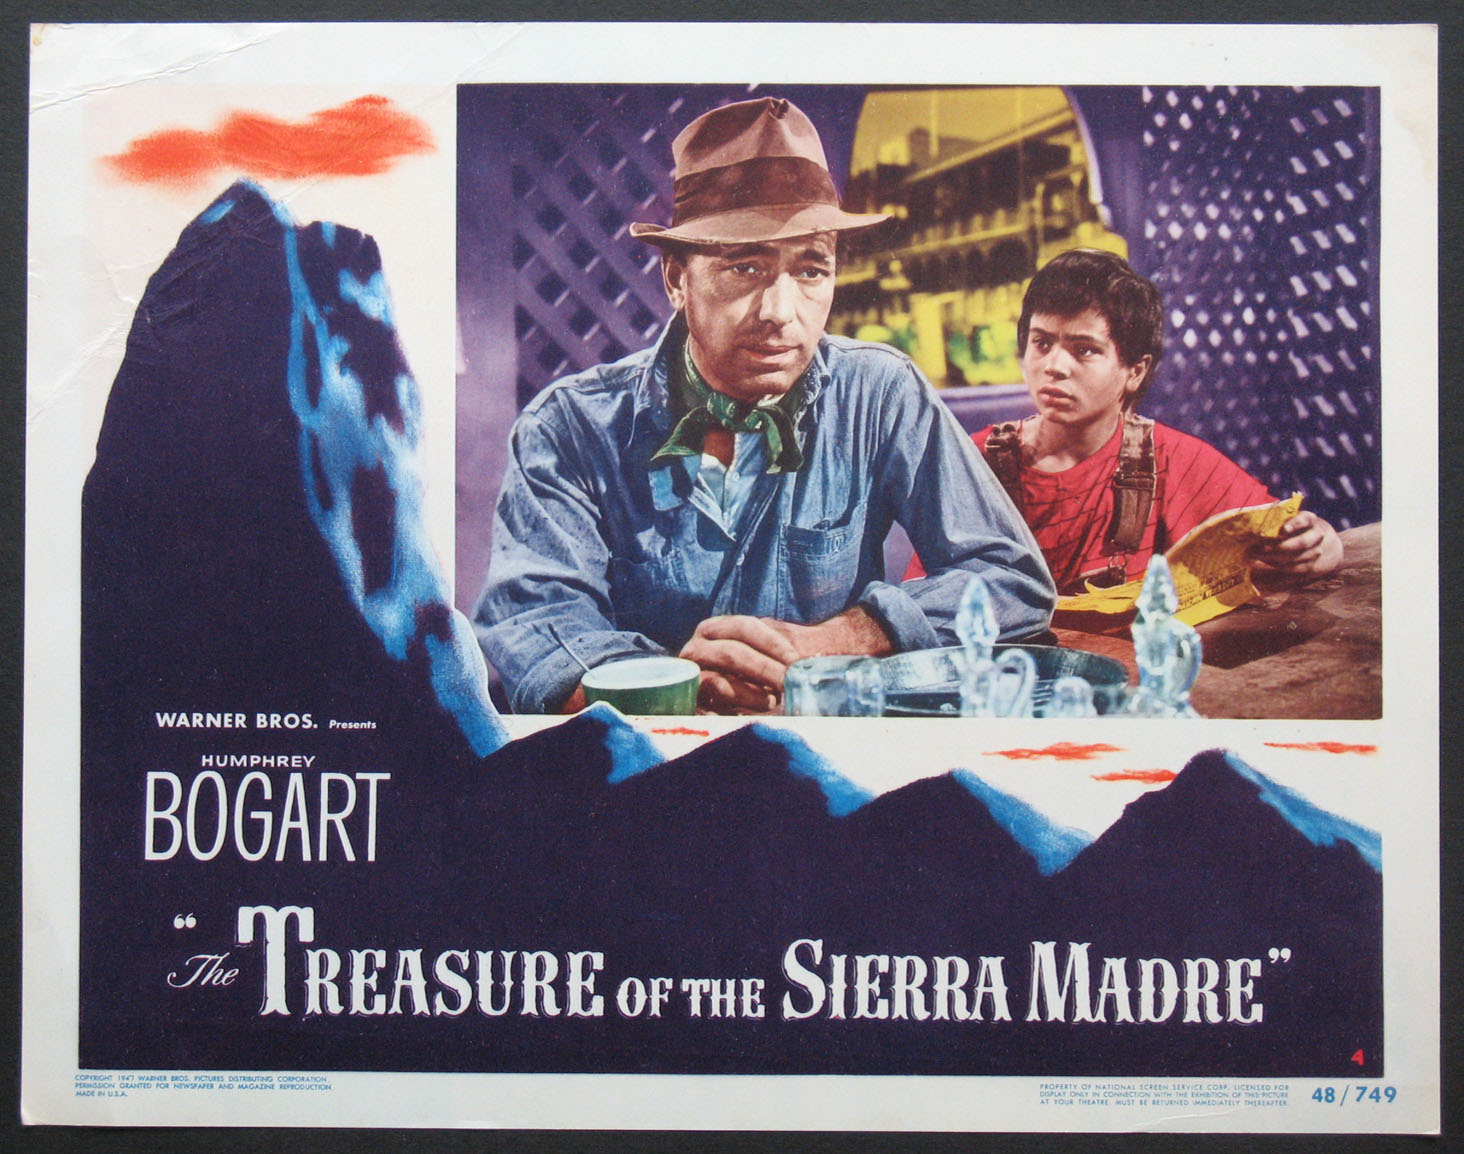 TREASURE OF THE SIERRA MADRE @ FilmPosters.com